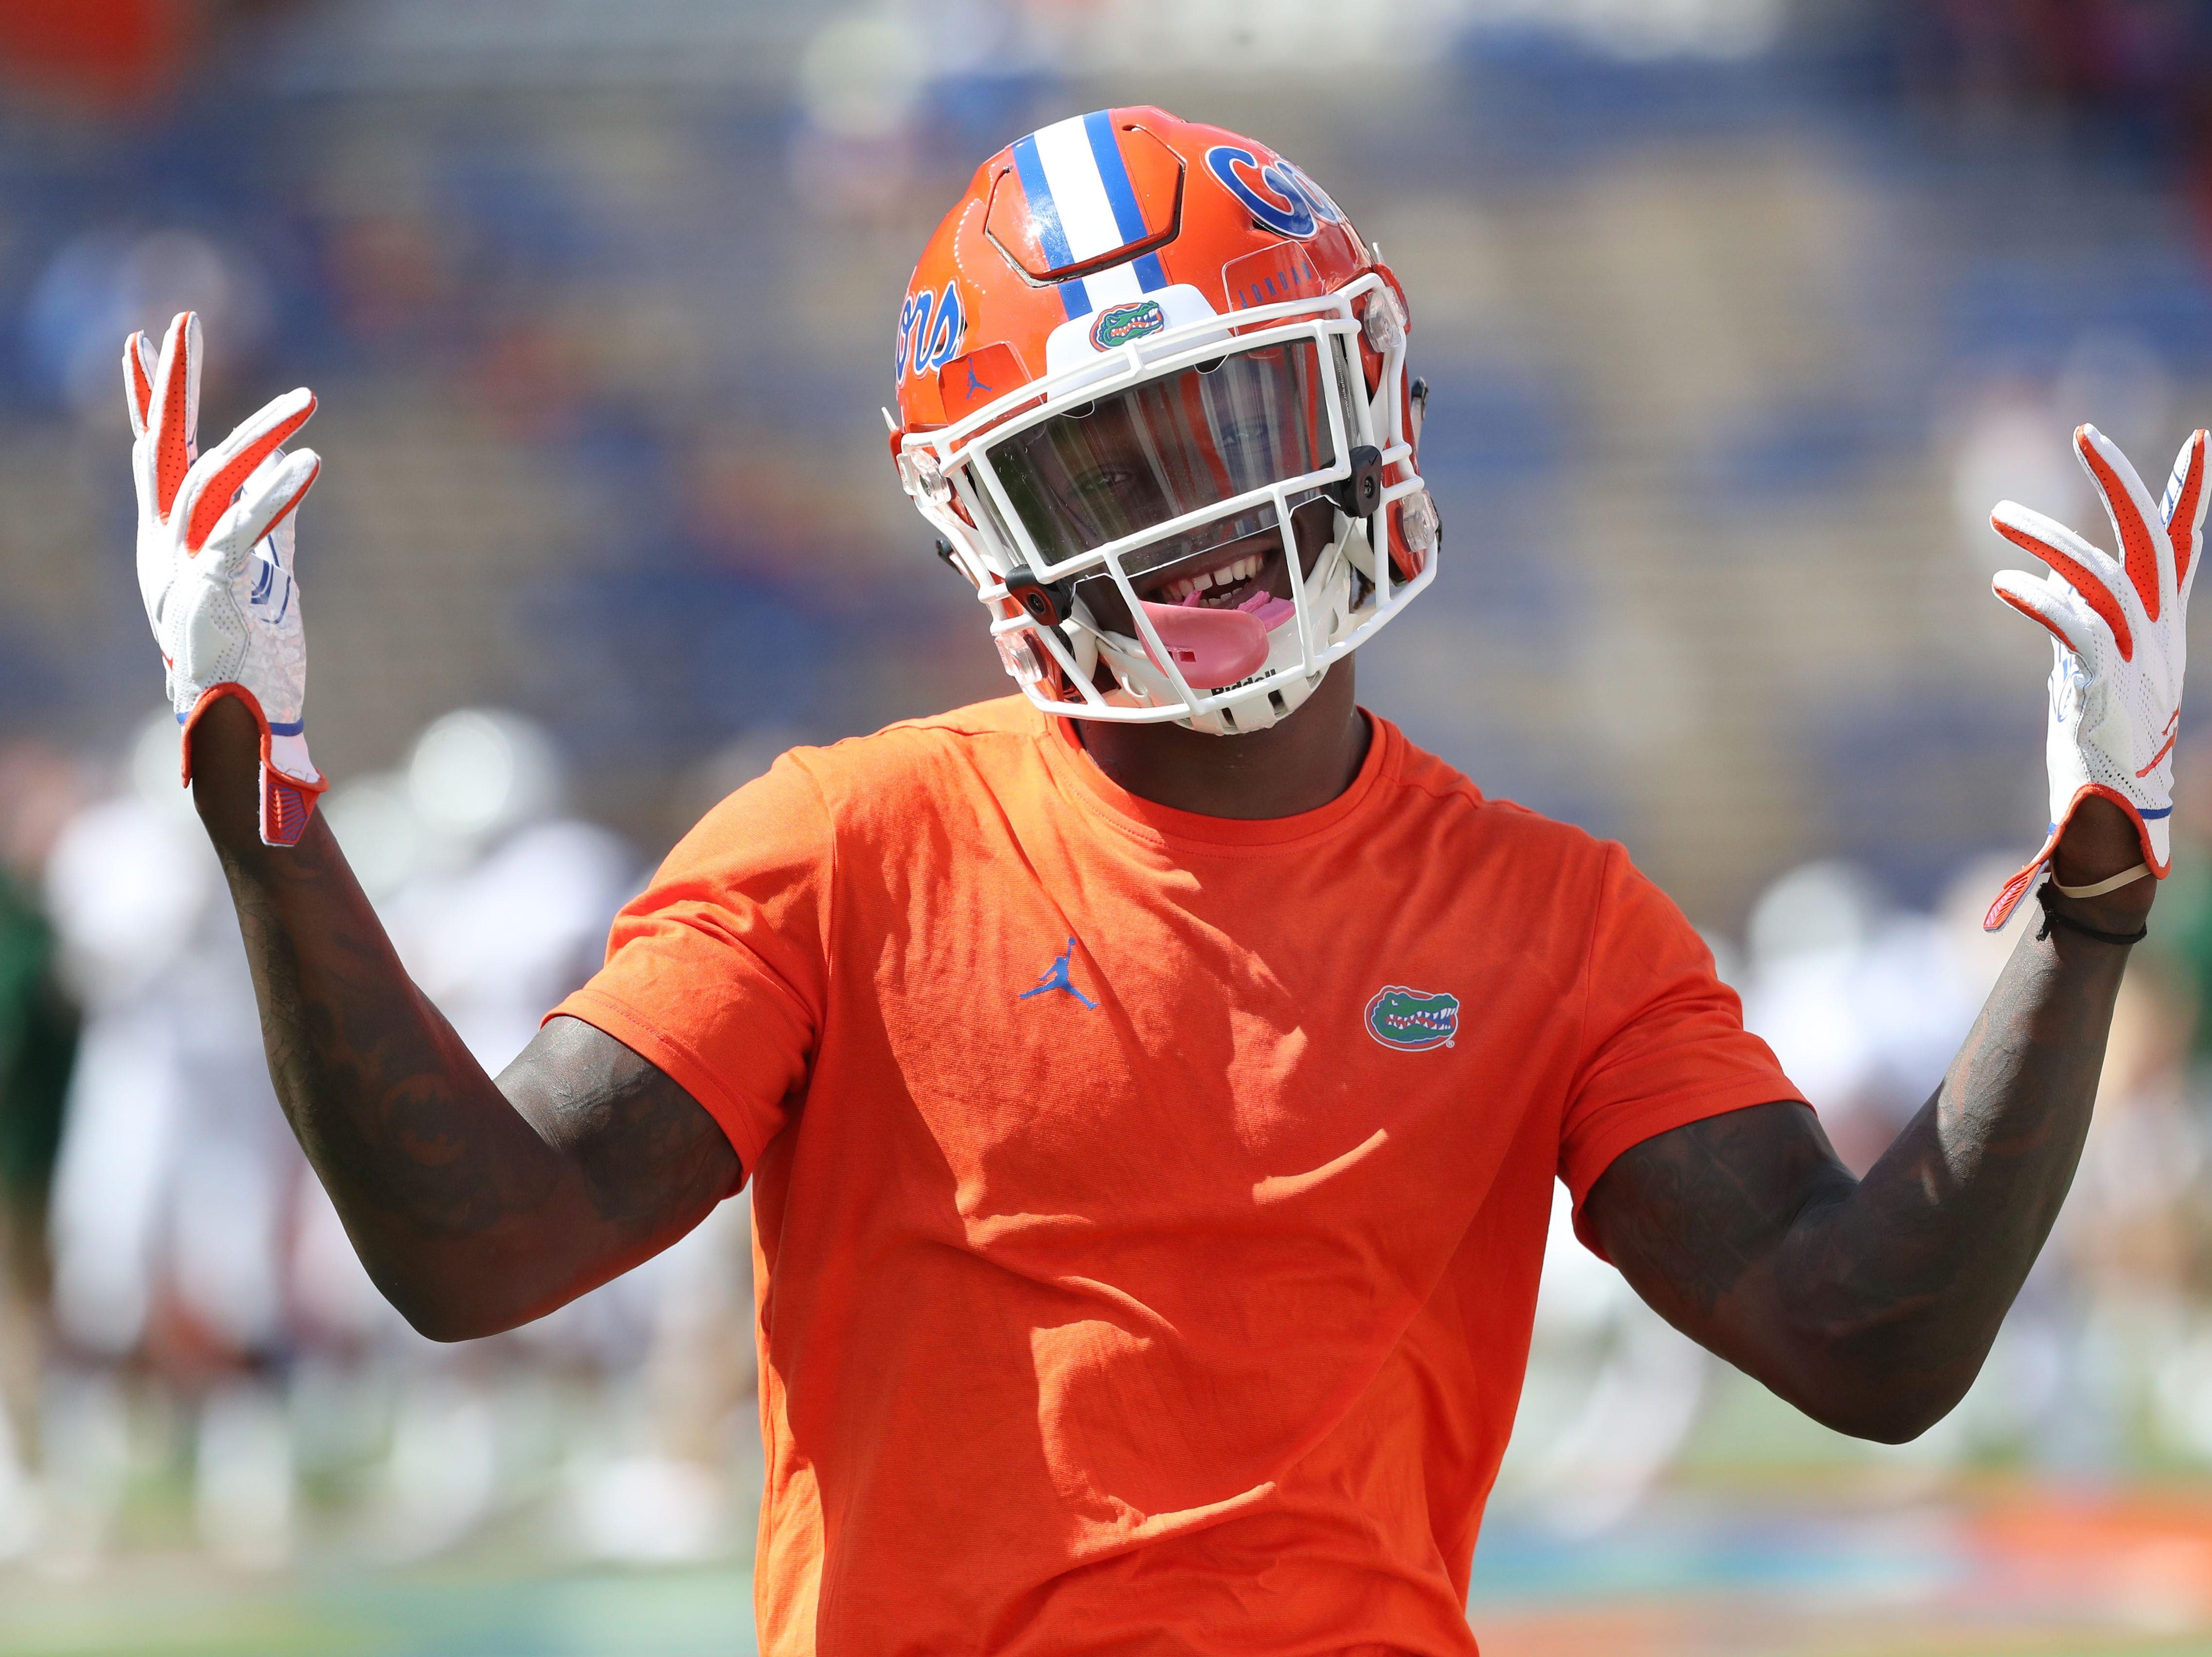 Sep 15, 2018; Gainesville, FL, USA; Florida Gators running back Kadarius Toney (4) works out prior to the game against the Colorado State Rams at Ben Hill Griffin Stadium. Mandatory Credit: Kim Klement-USA TODAY Sports